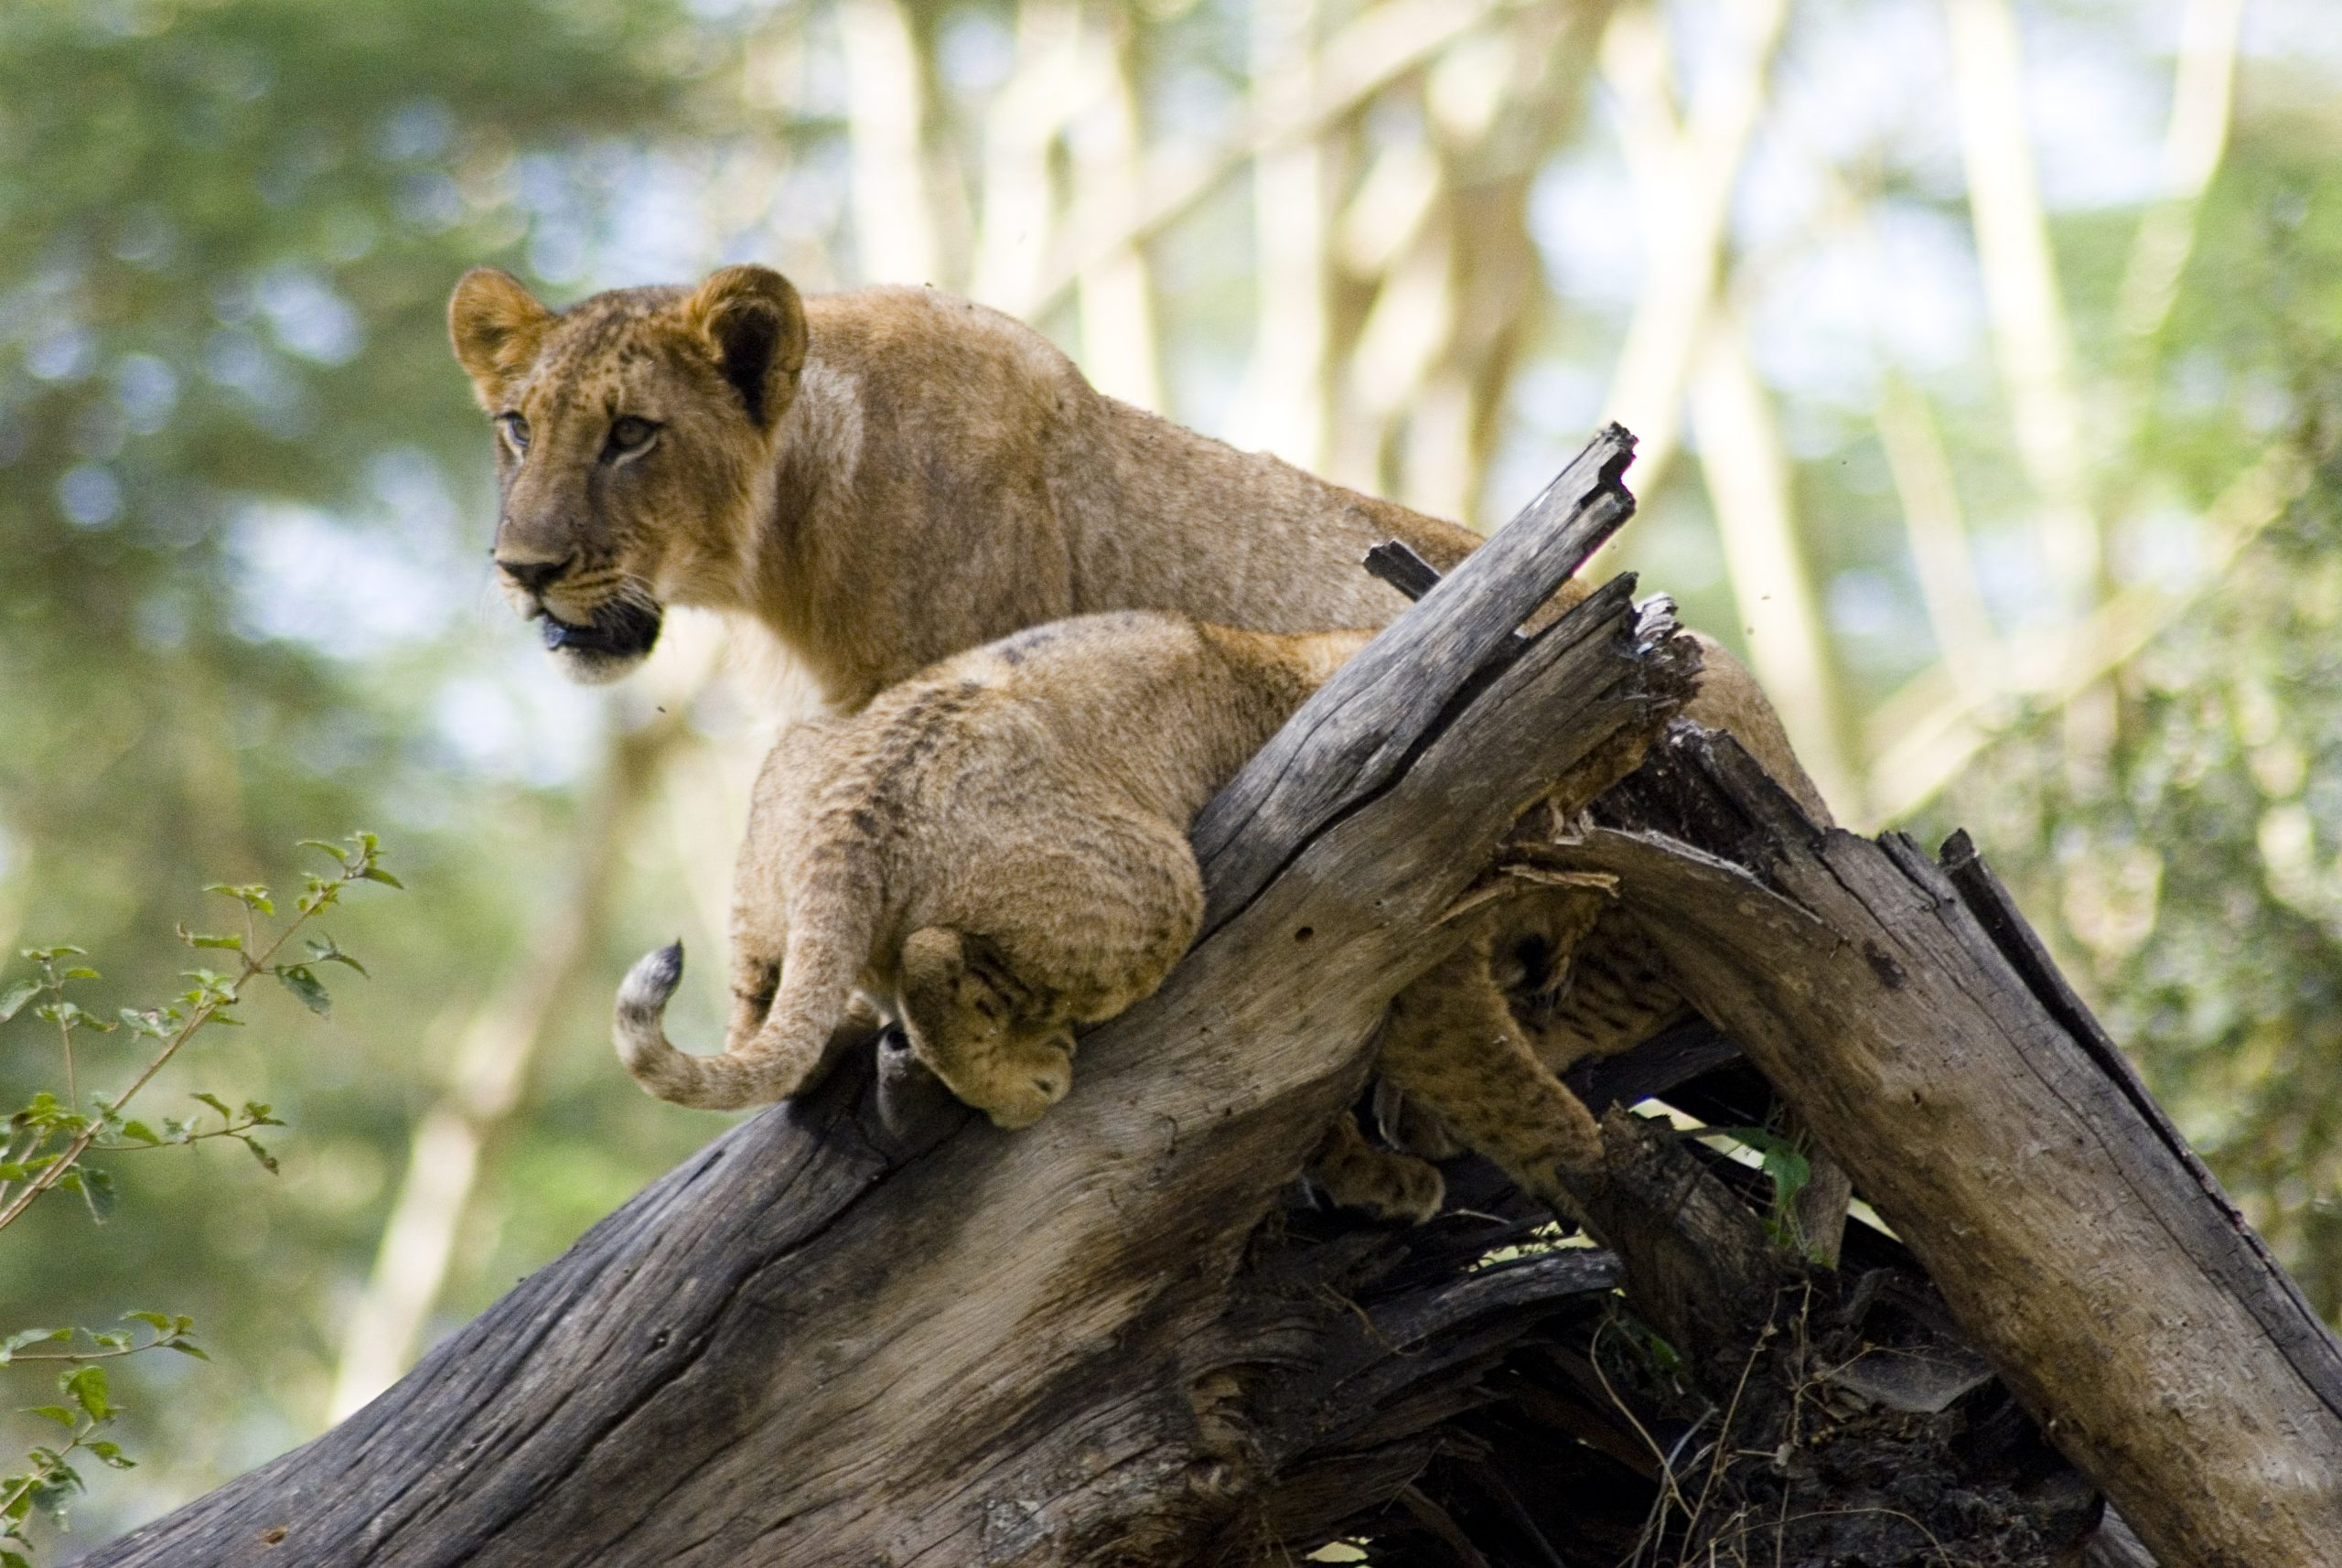 A lioness and a Cub in Lake Nakuru NP. Kenya wildlife safaris